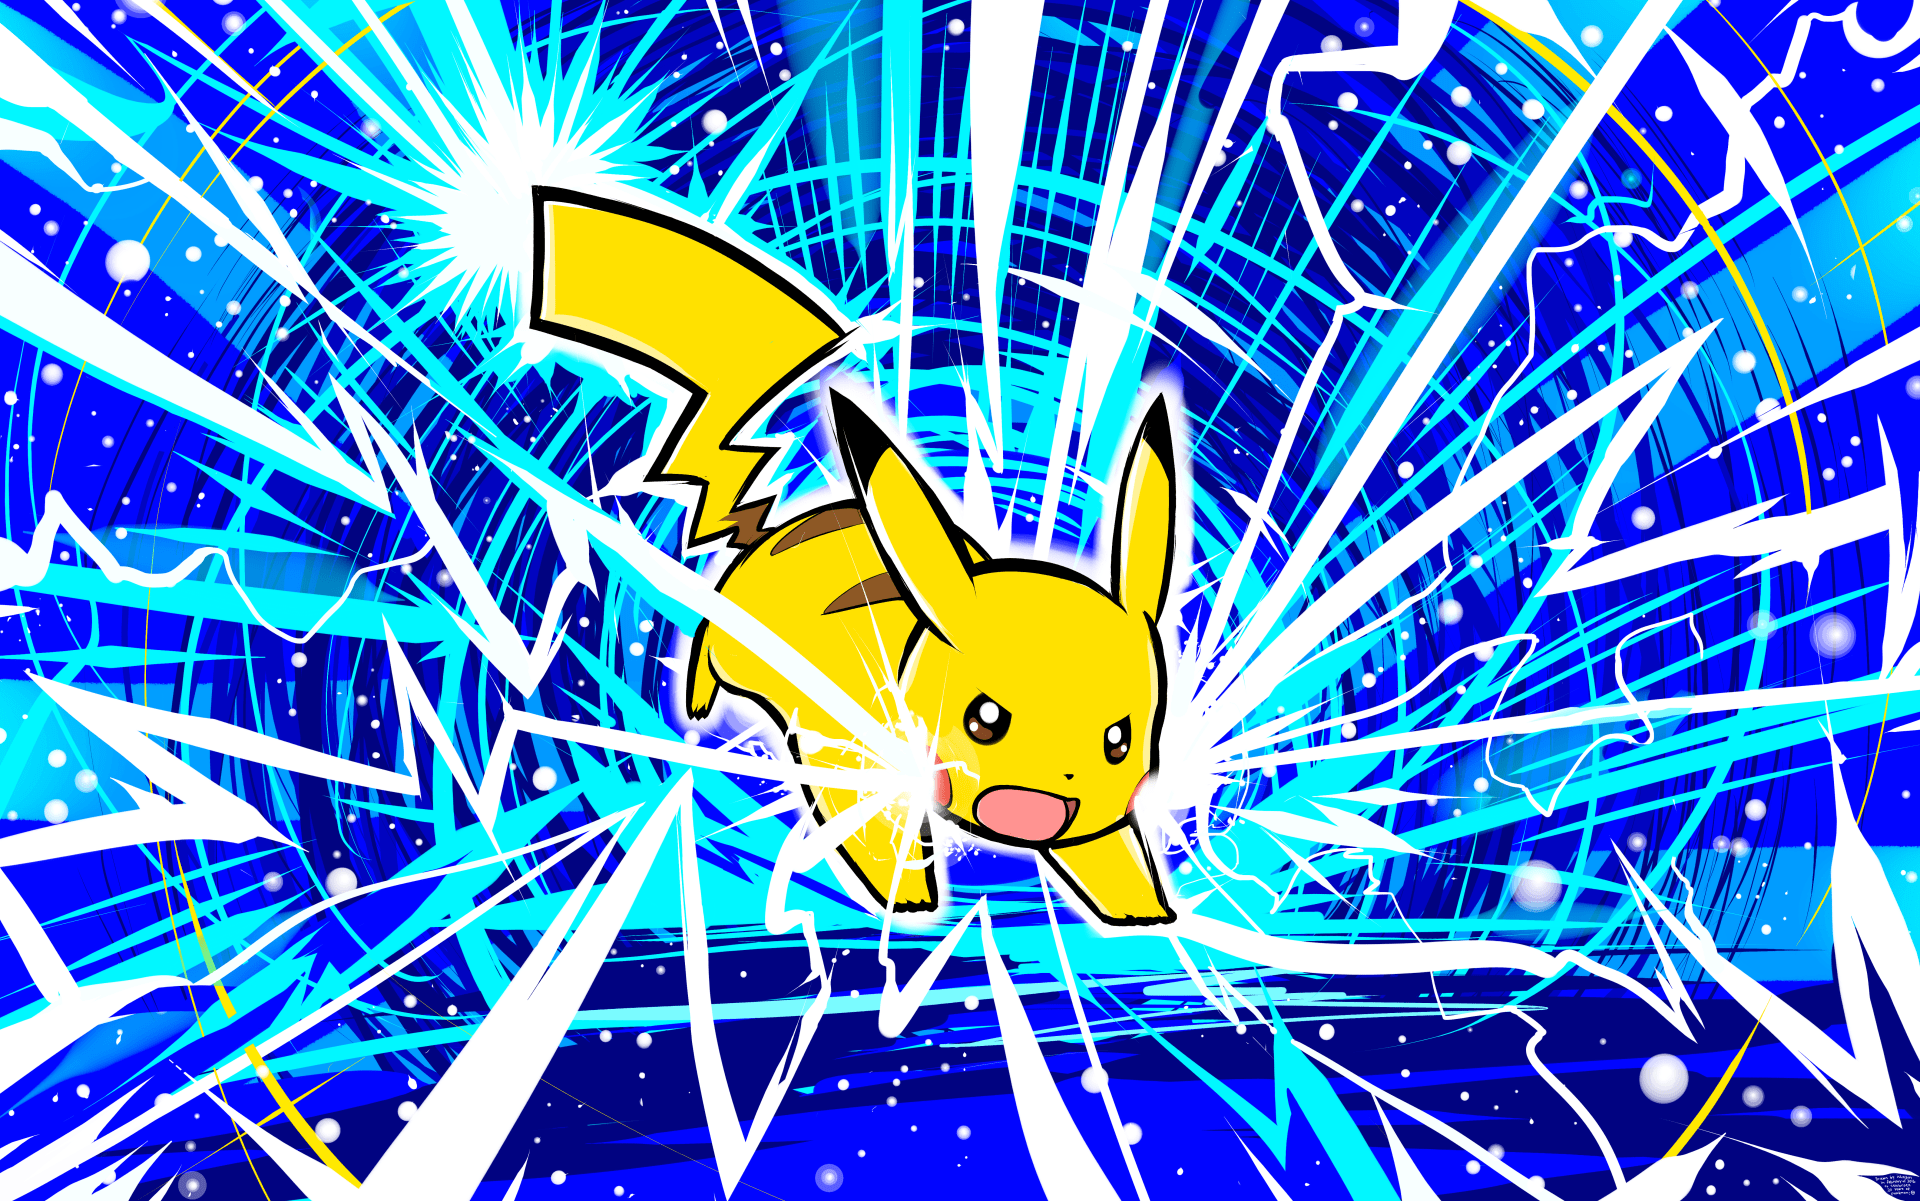 Cute Pikachu Iphone 5 Wallpaper Pikachu Thunderbolt 5k Retina Ultra Hd Fondo De Pantalla